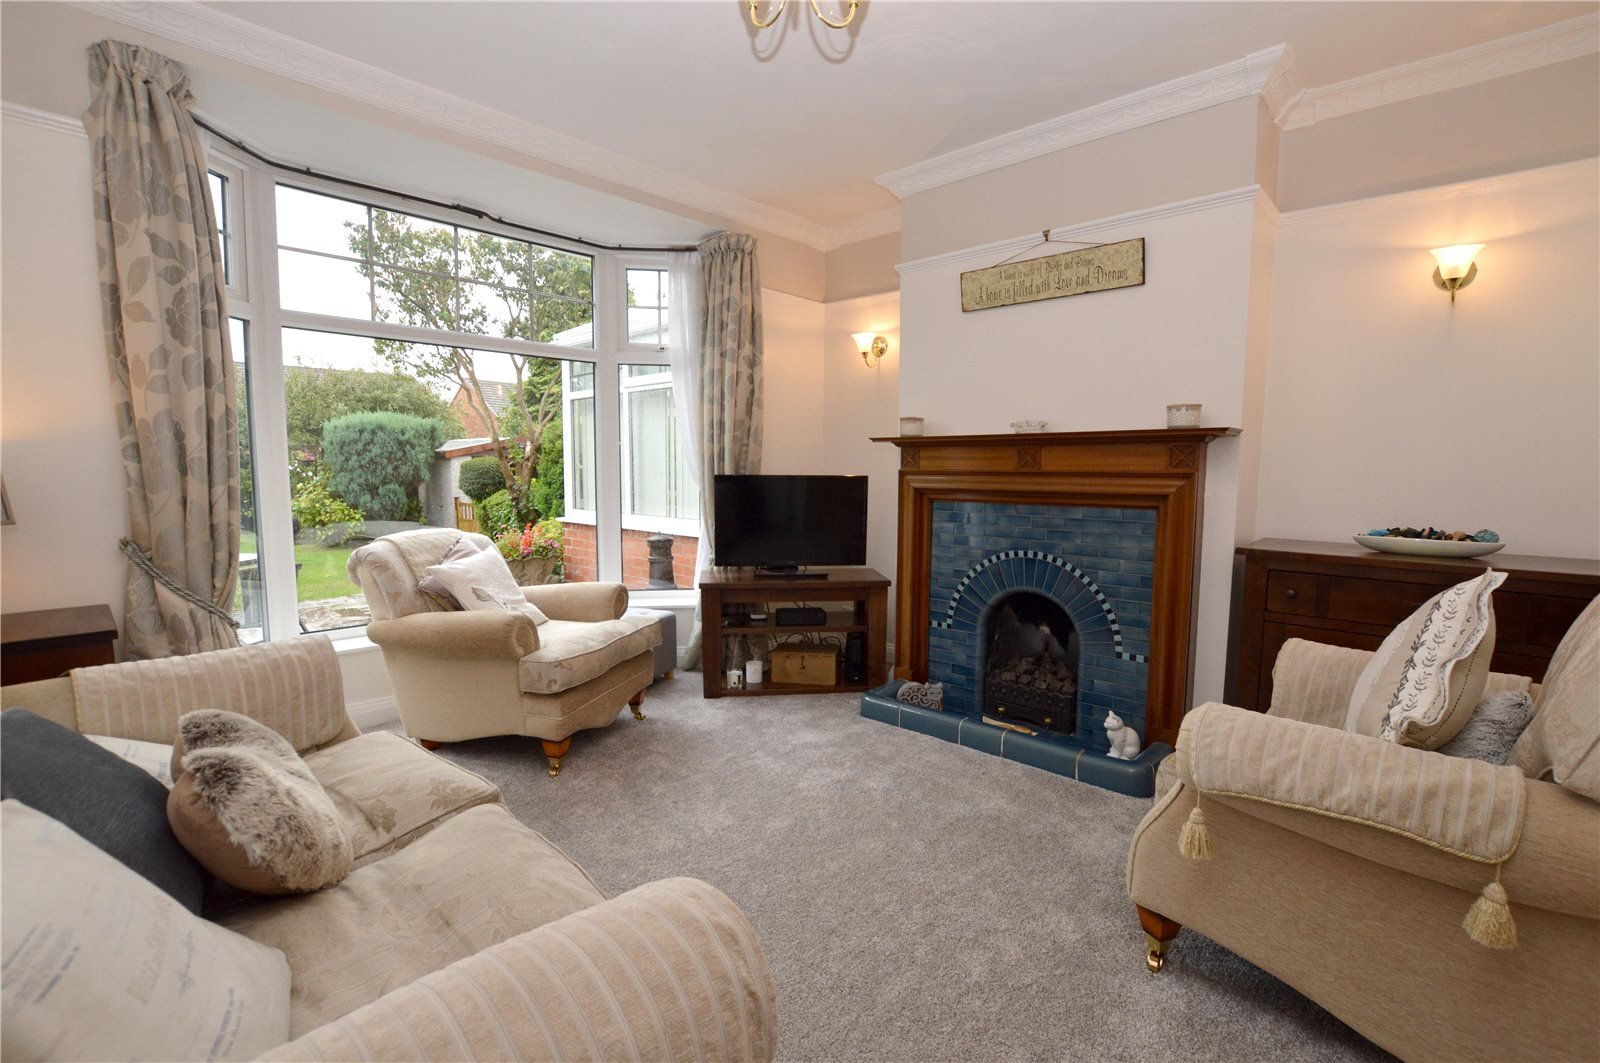 property for sale in Pudsey, interior reception room